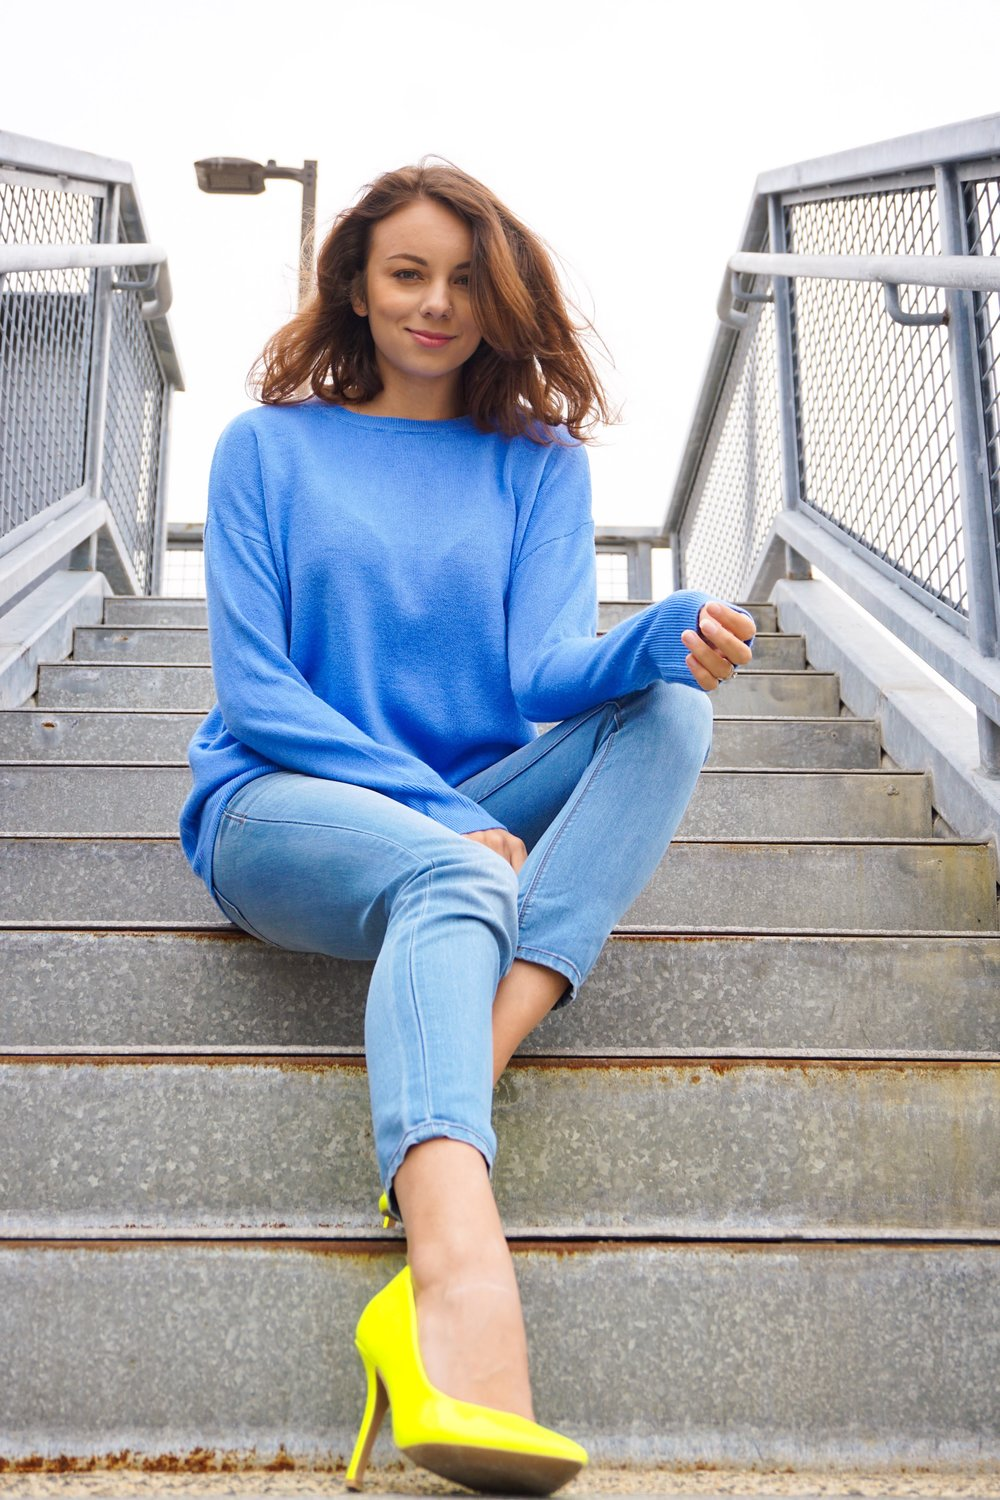 A girl sitting on the stairs, wearing an all blue autumn look.